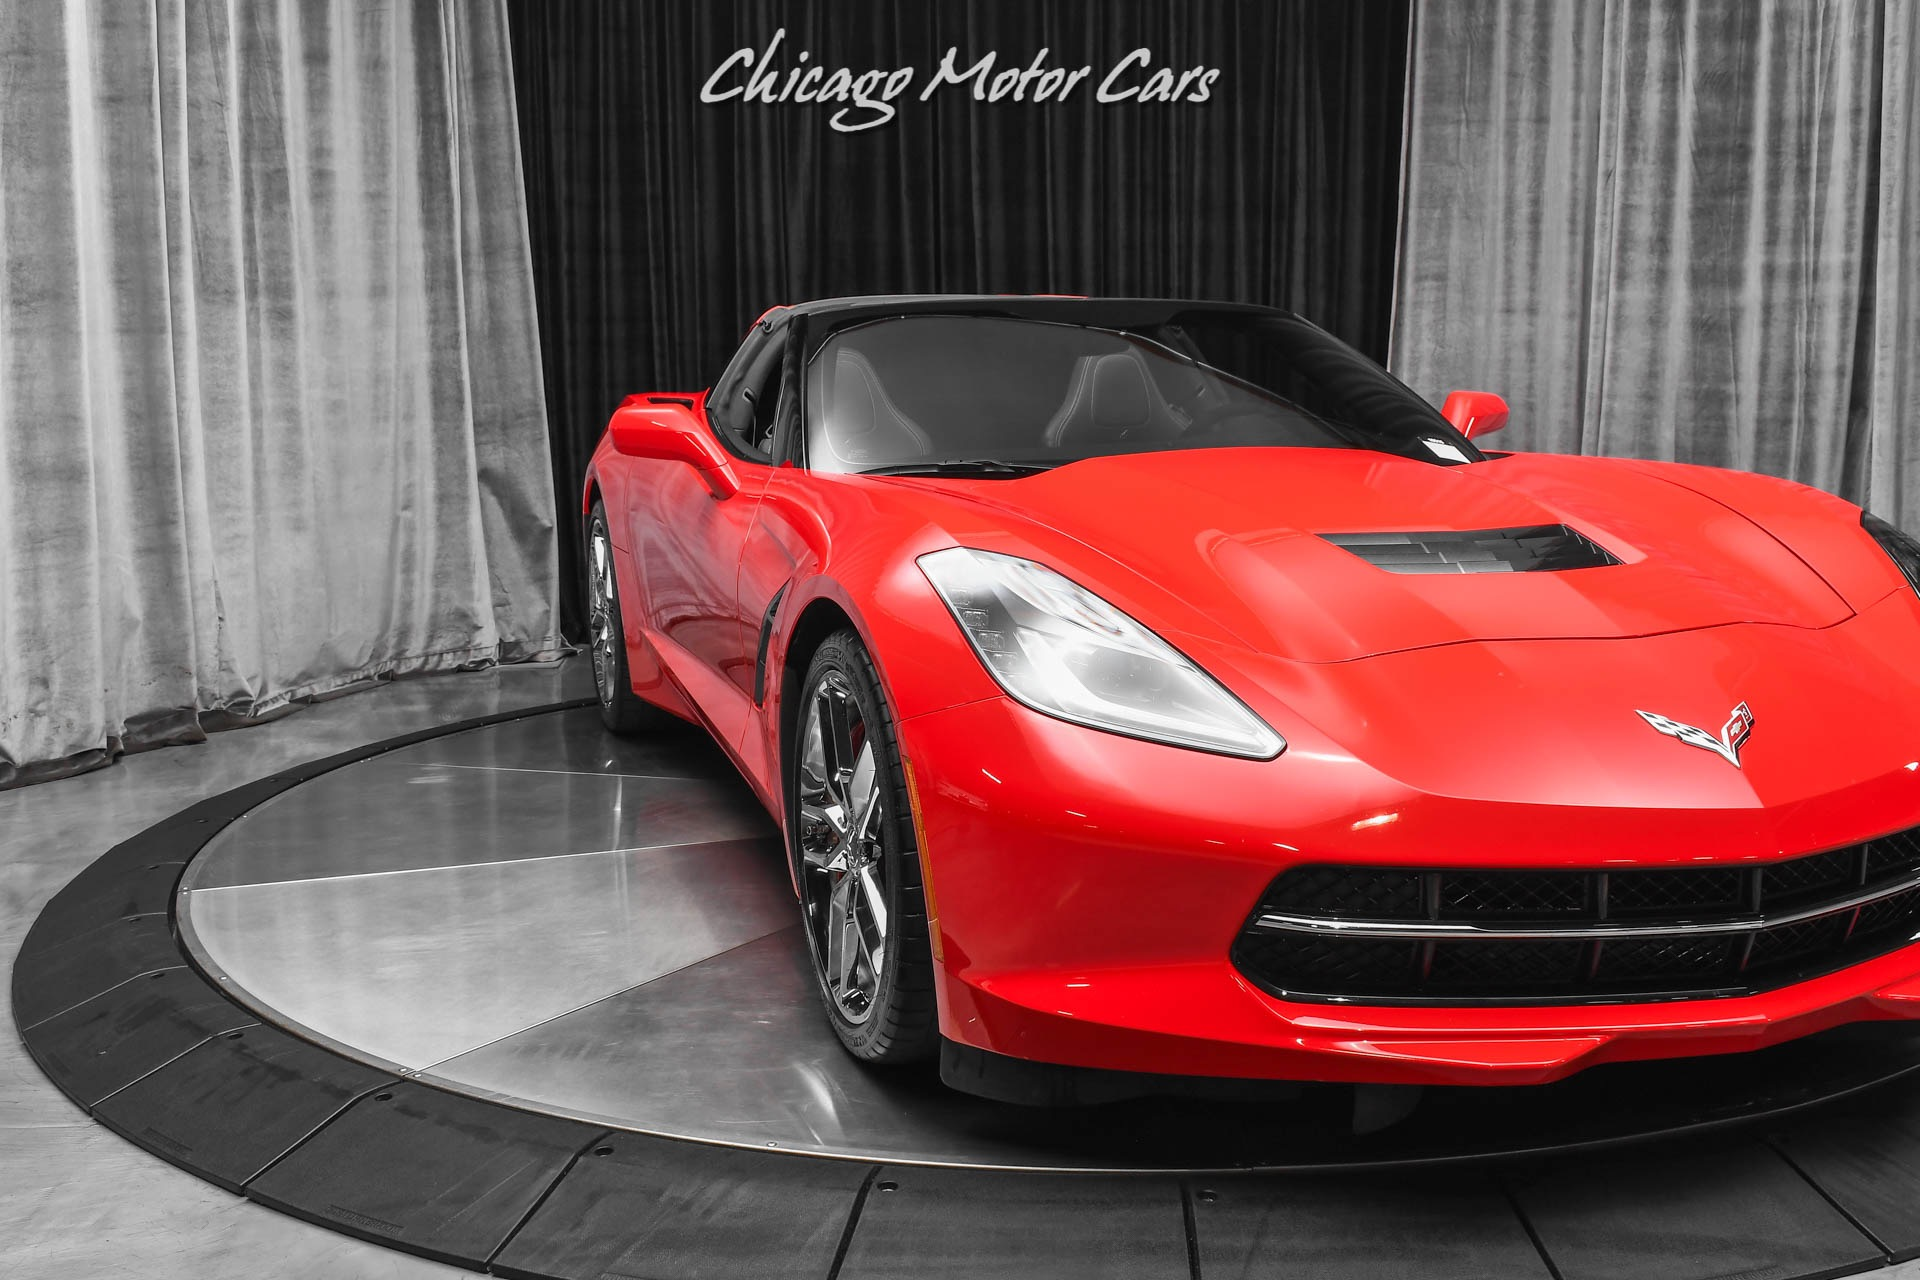 Used-2014-Chevrolet-Corvette-Stingray-2LT-7-Speed-Manual-100k-In-Upgrades-Supercharged